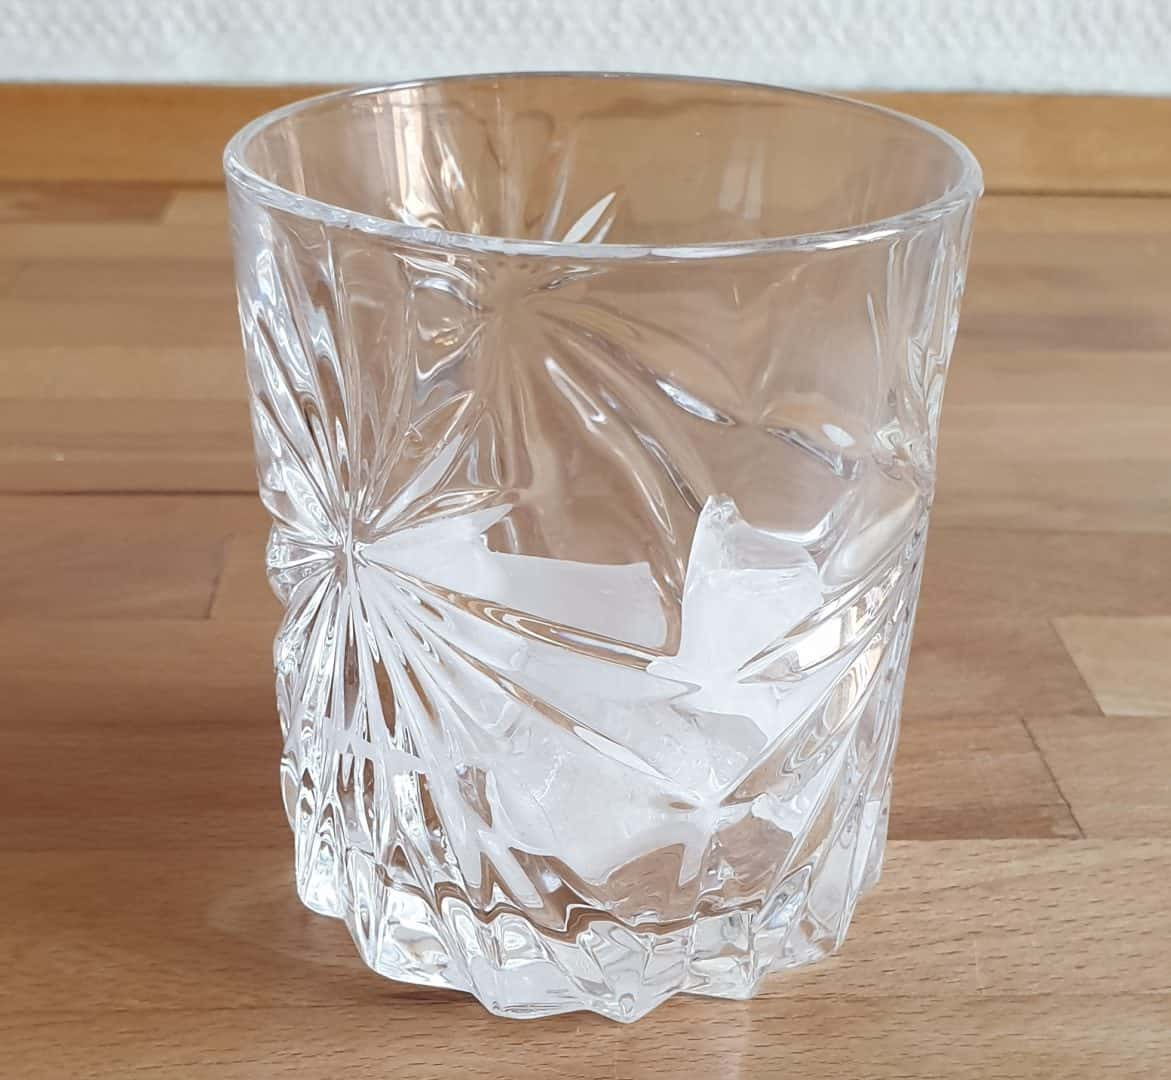 Start making the iced coffee with ice cubes